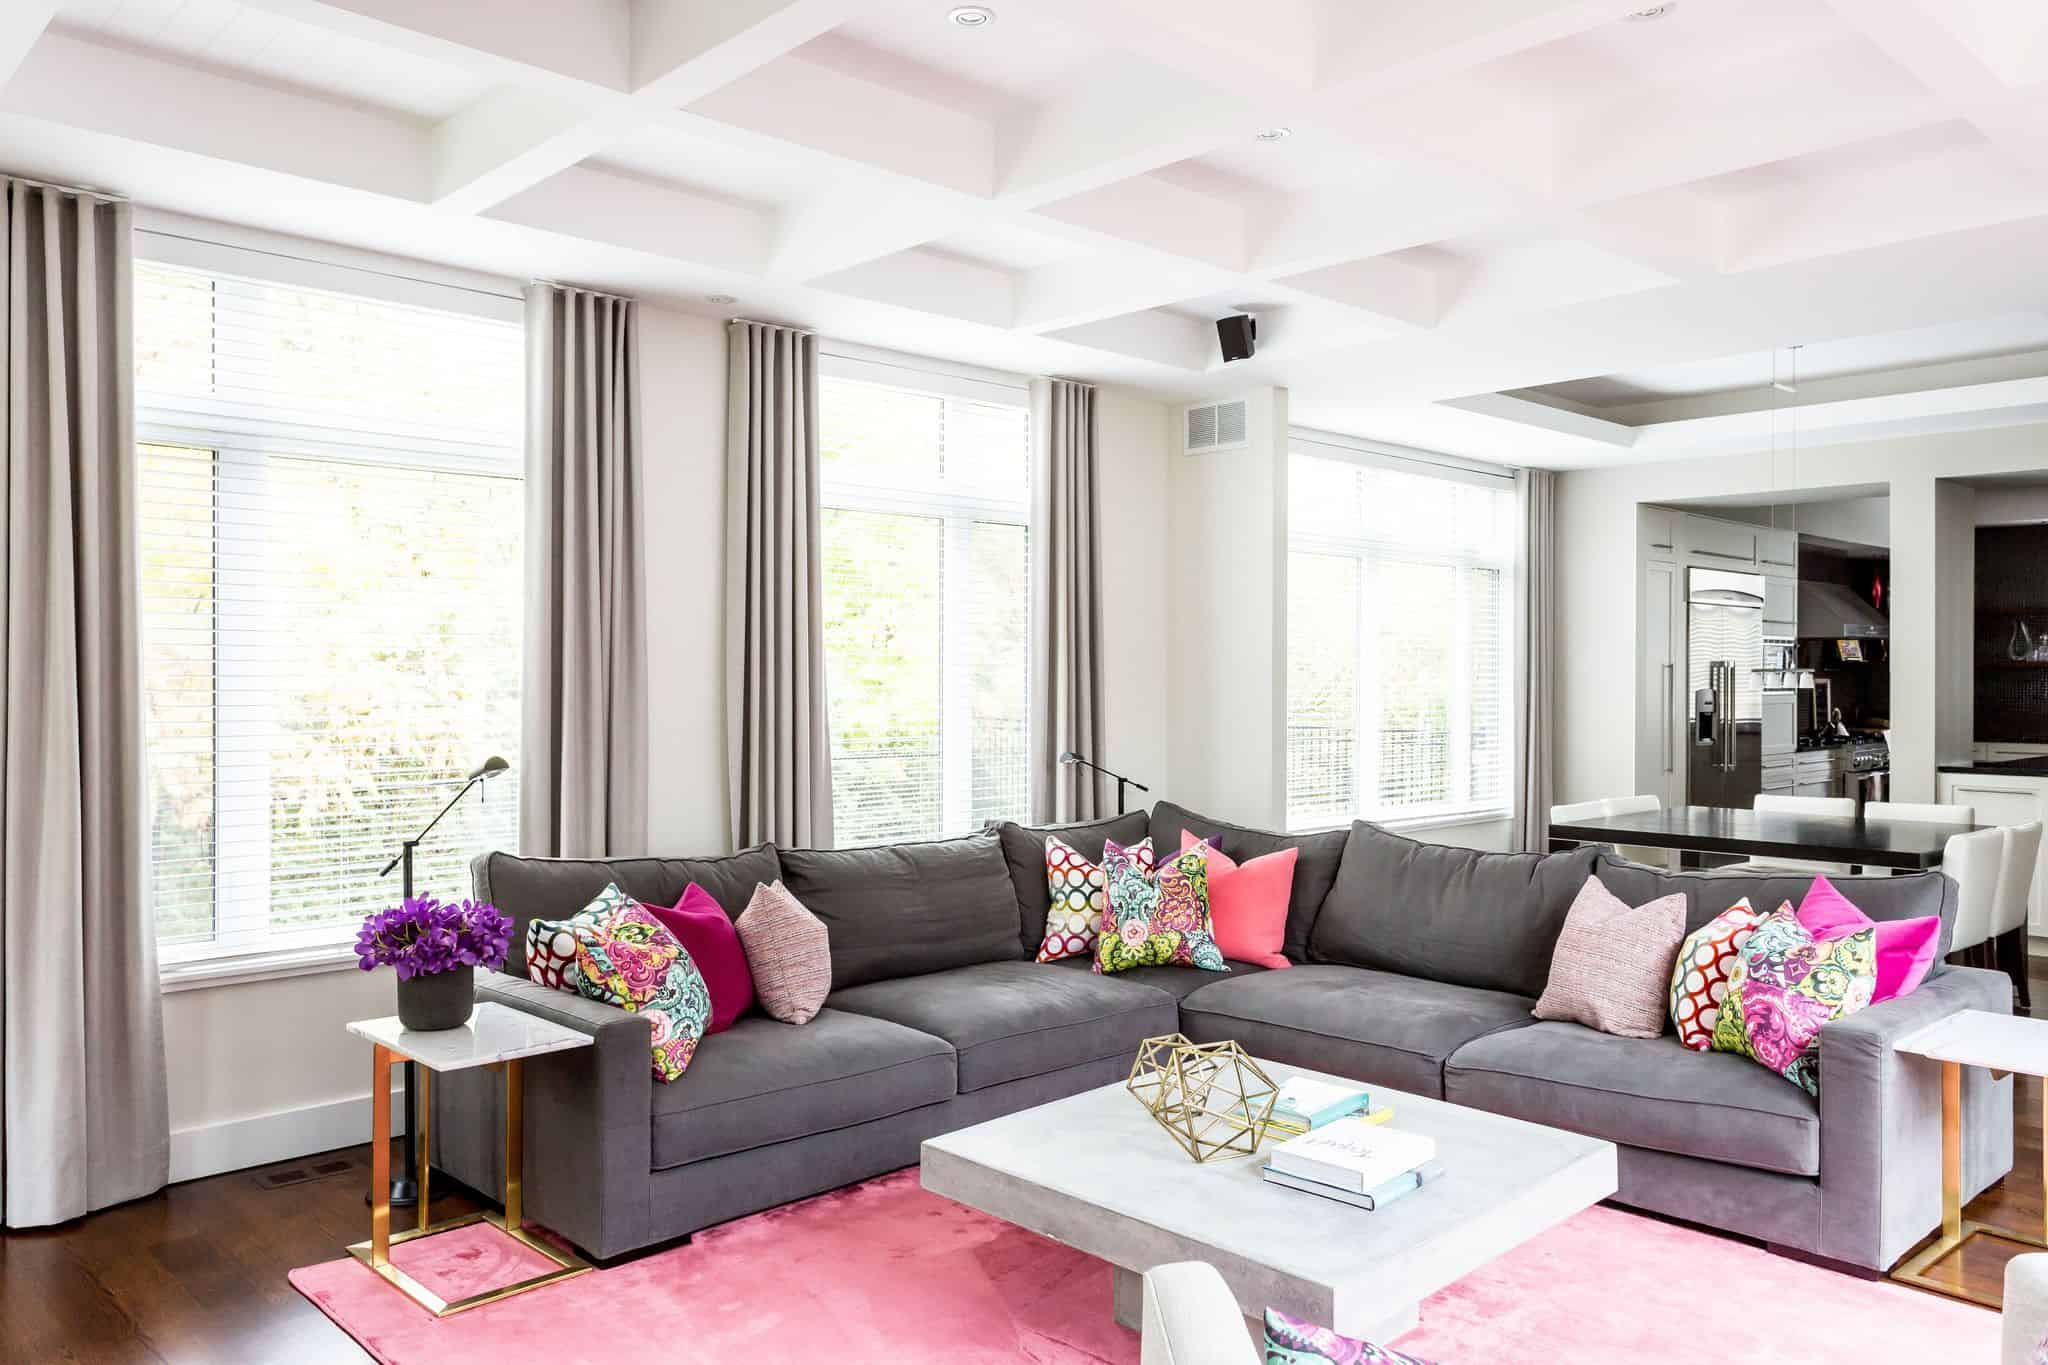 Gray corner couch inside a living room with a pink carpet